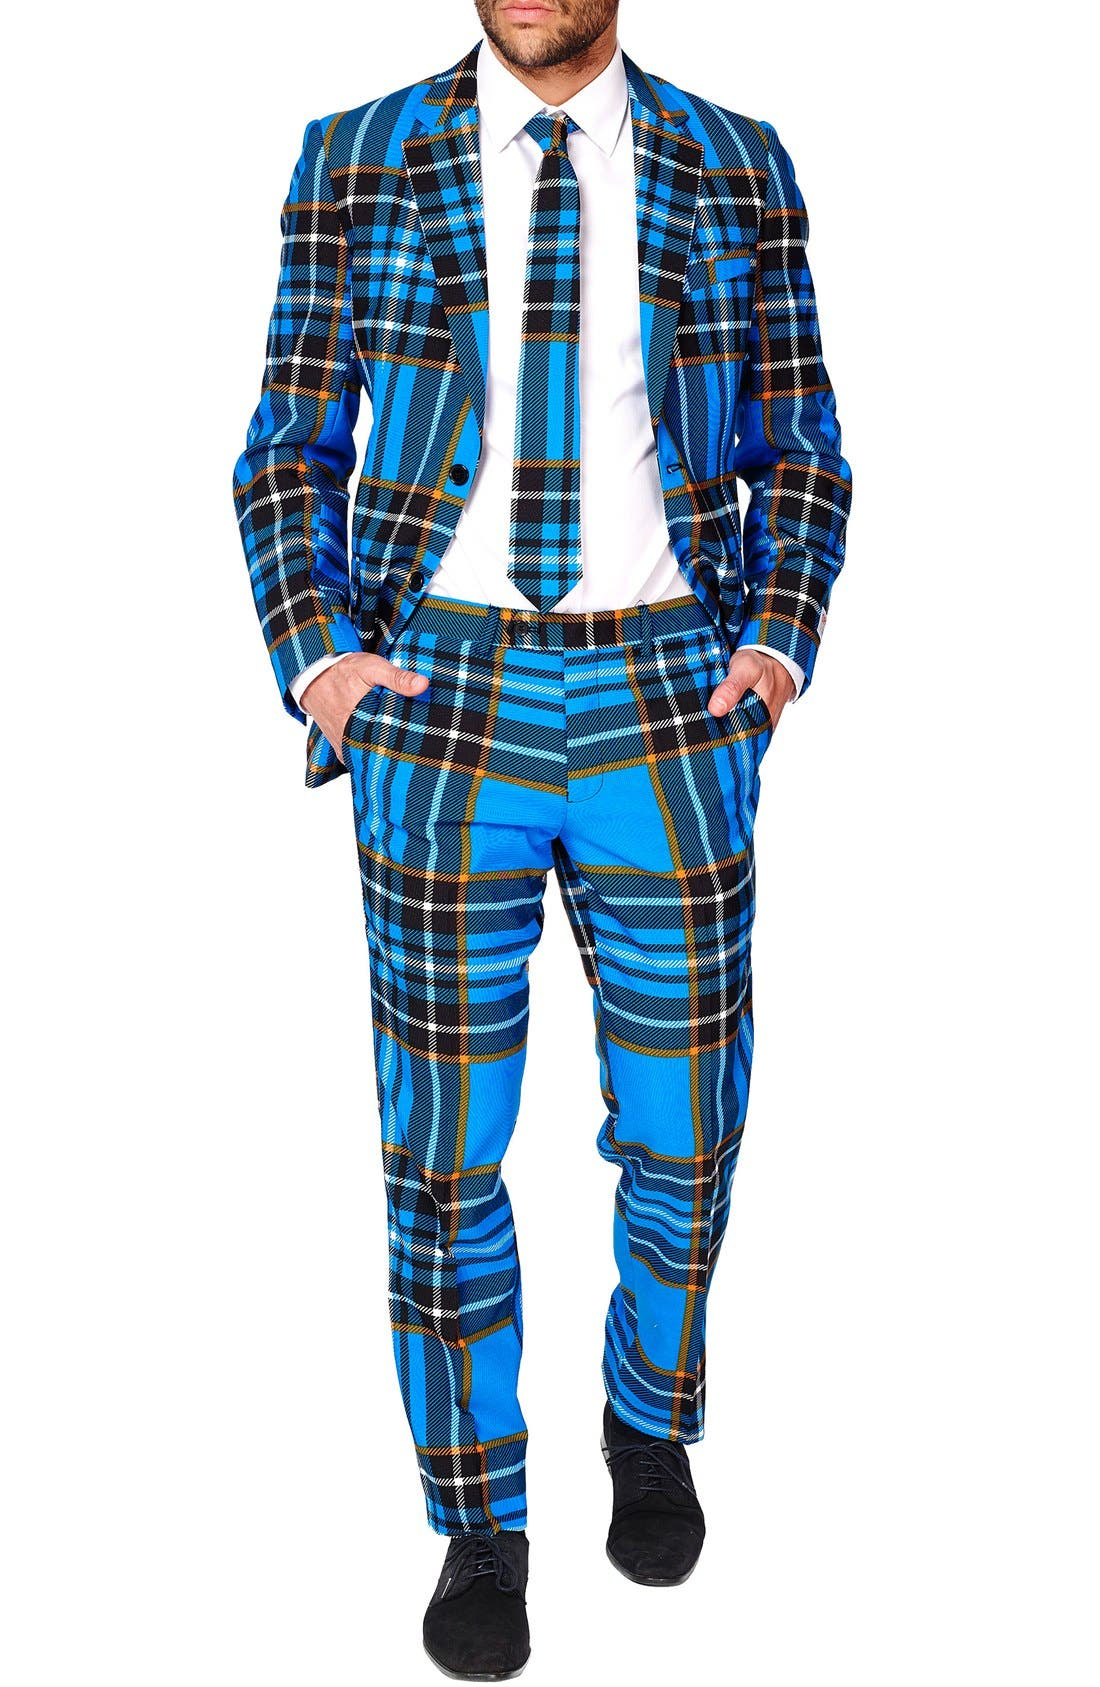 OppoSuits 'Braveheart' Trim Fit Suit with Tie